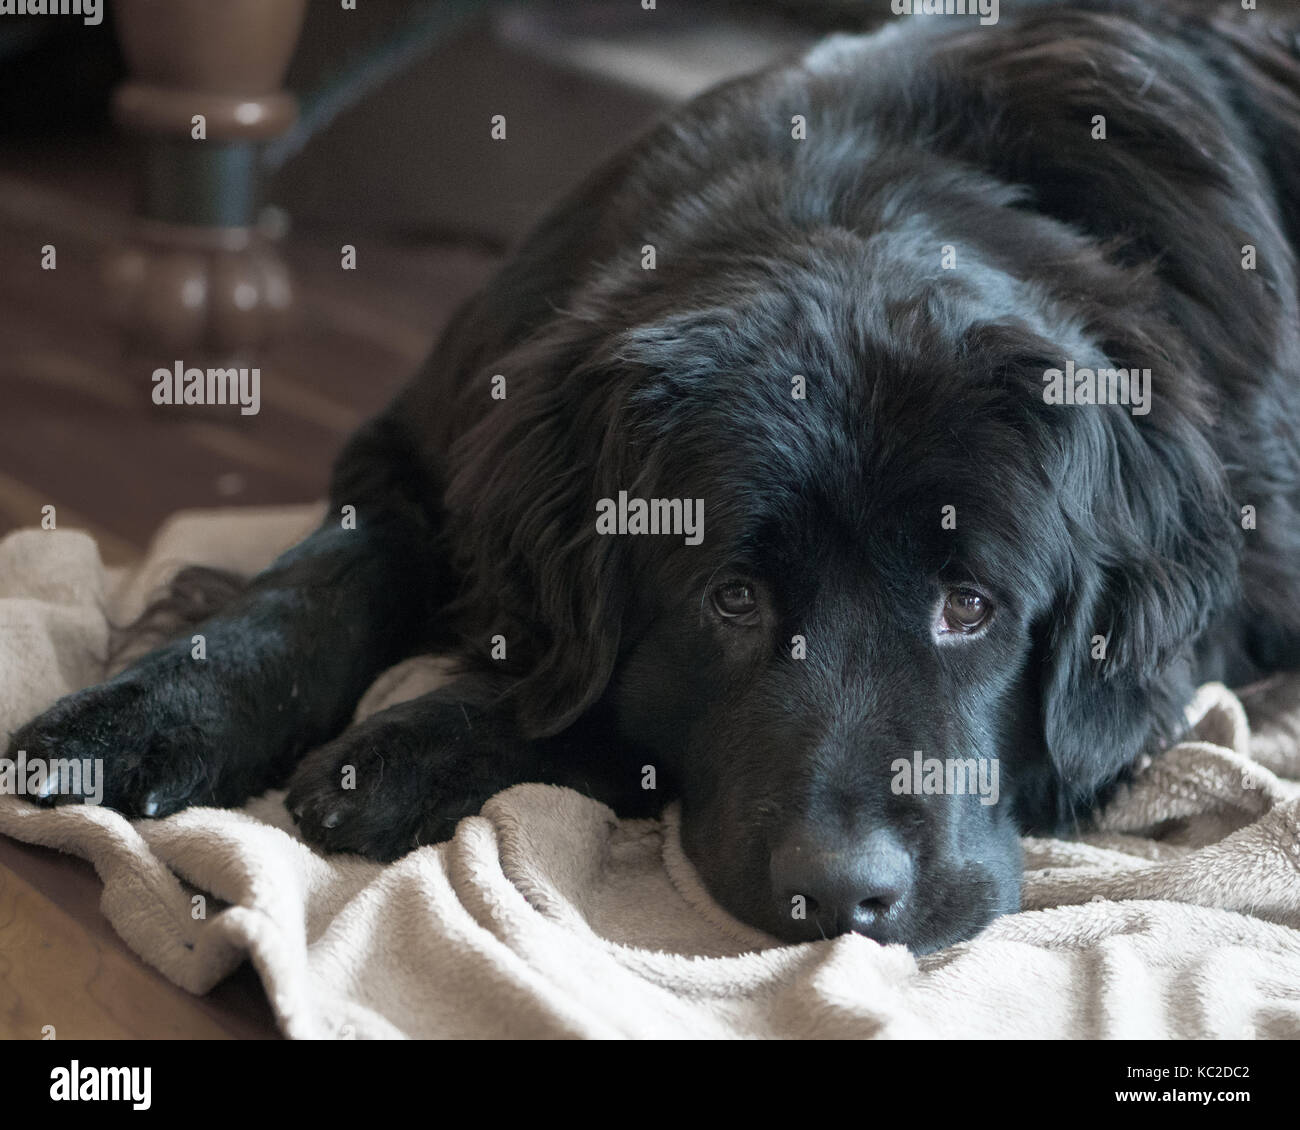 Sweet black newfoundland dog with sad face lying on a blanket with muted colours. Stock Photo